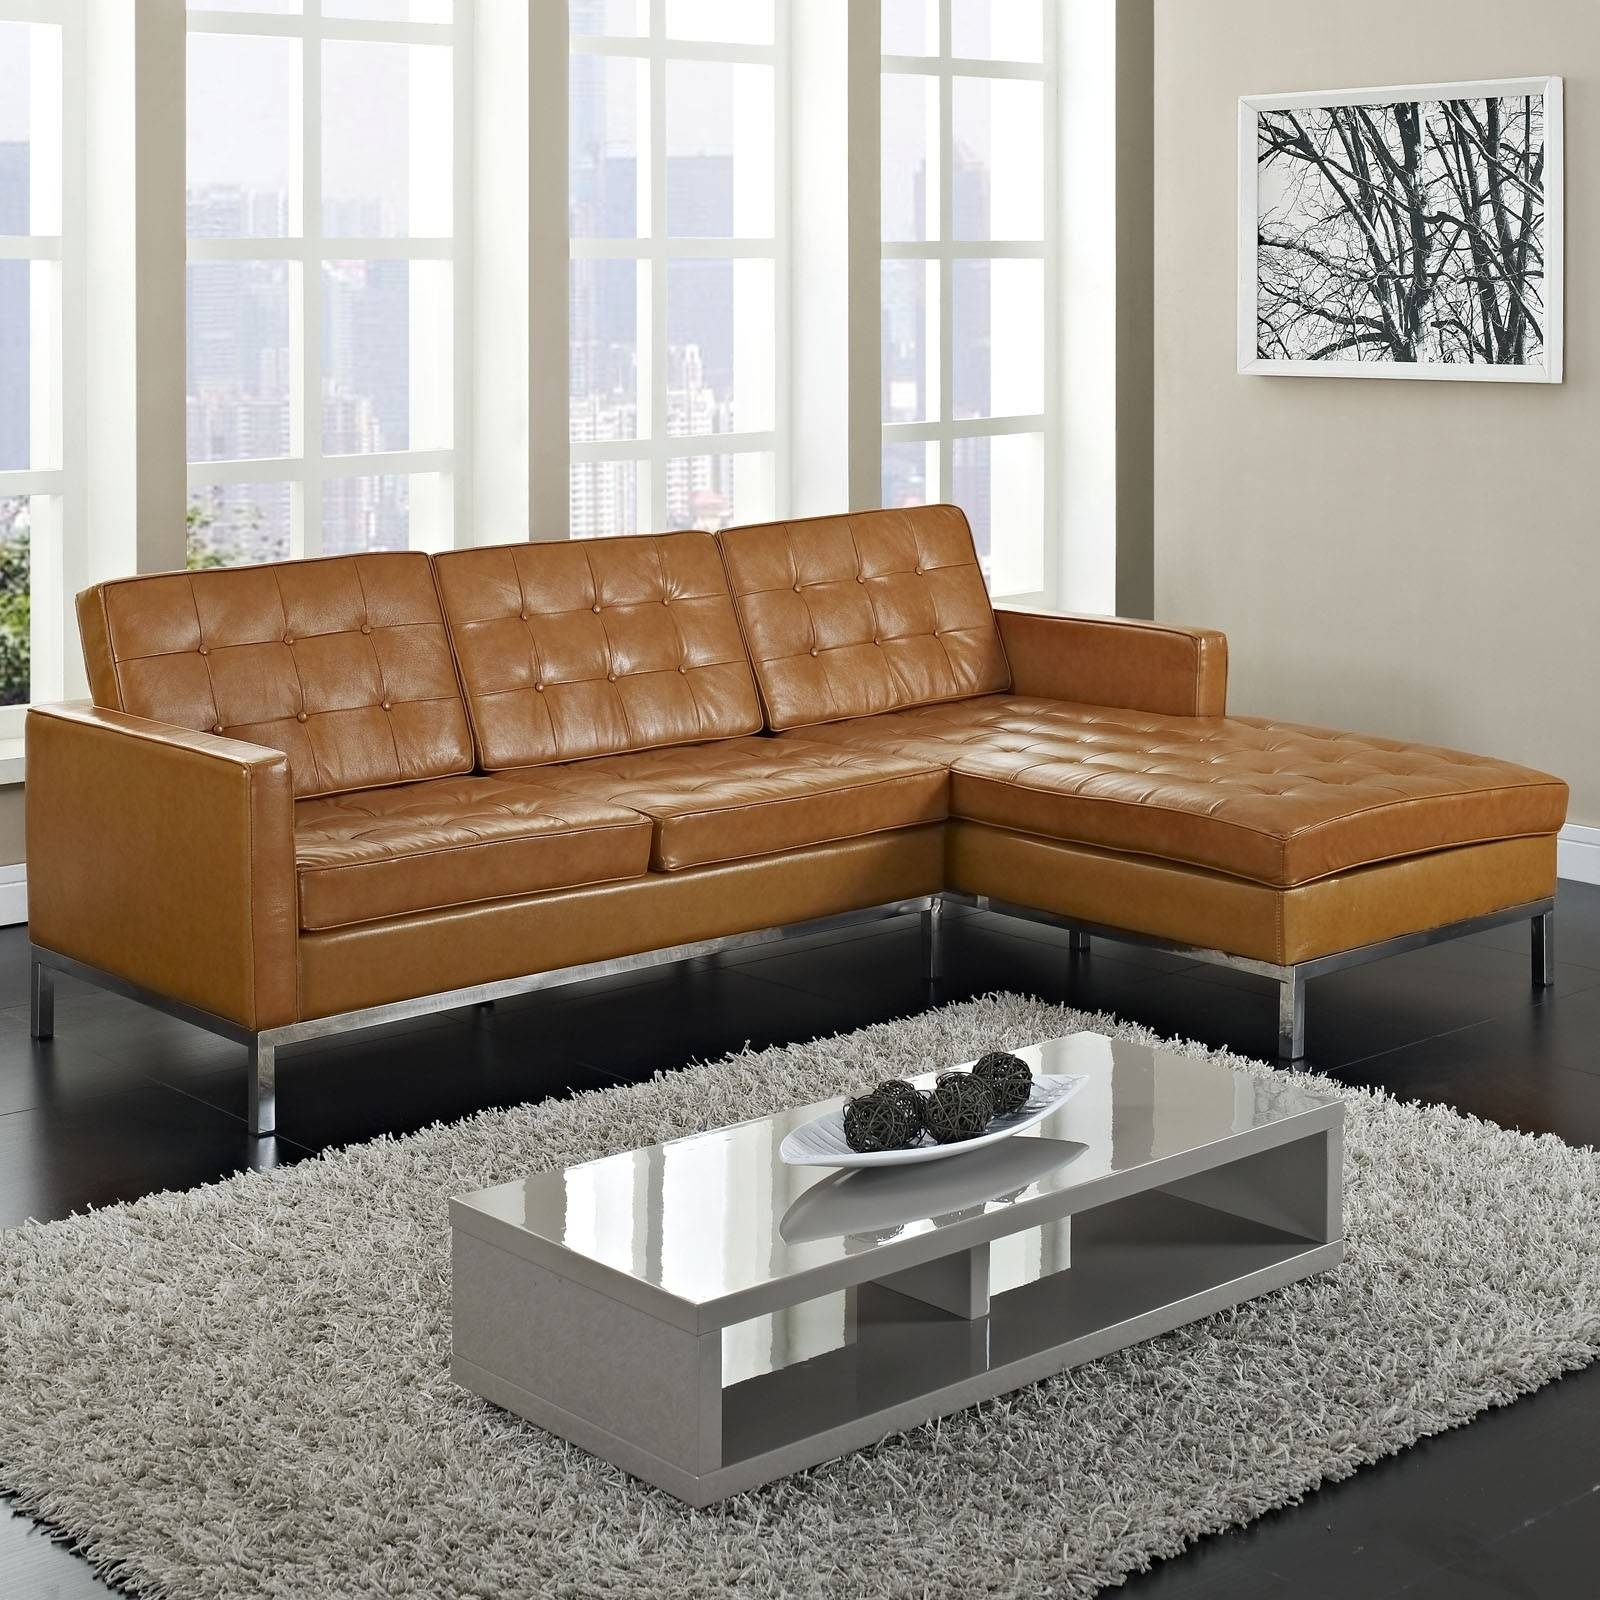 Sectional Sleeper Sofa With Storage For Small House within 3 Piece Sectional Sleeper Sofa (Image 23 of 30)